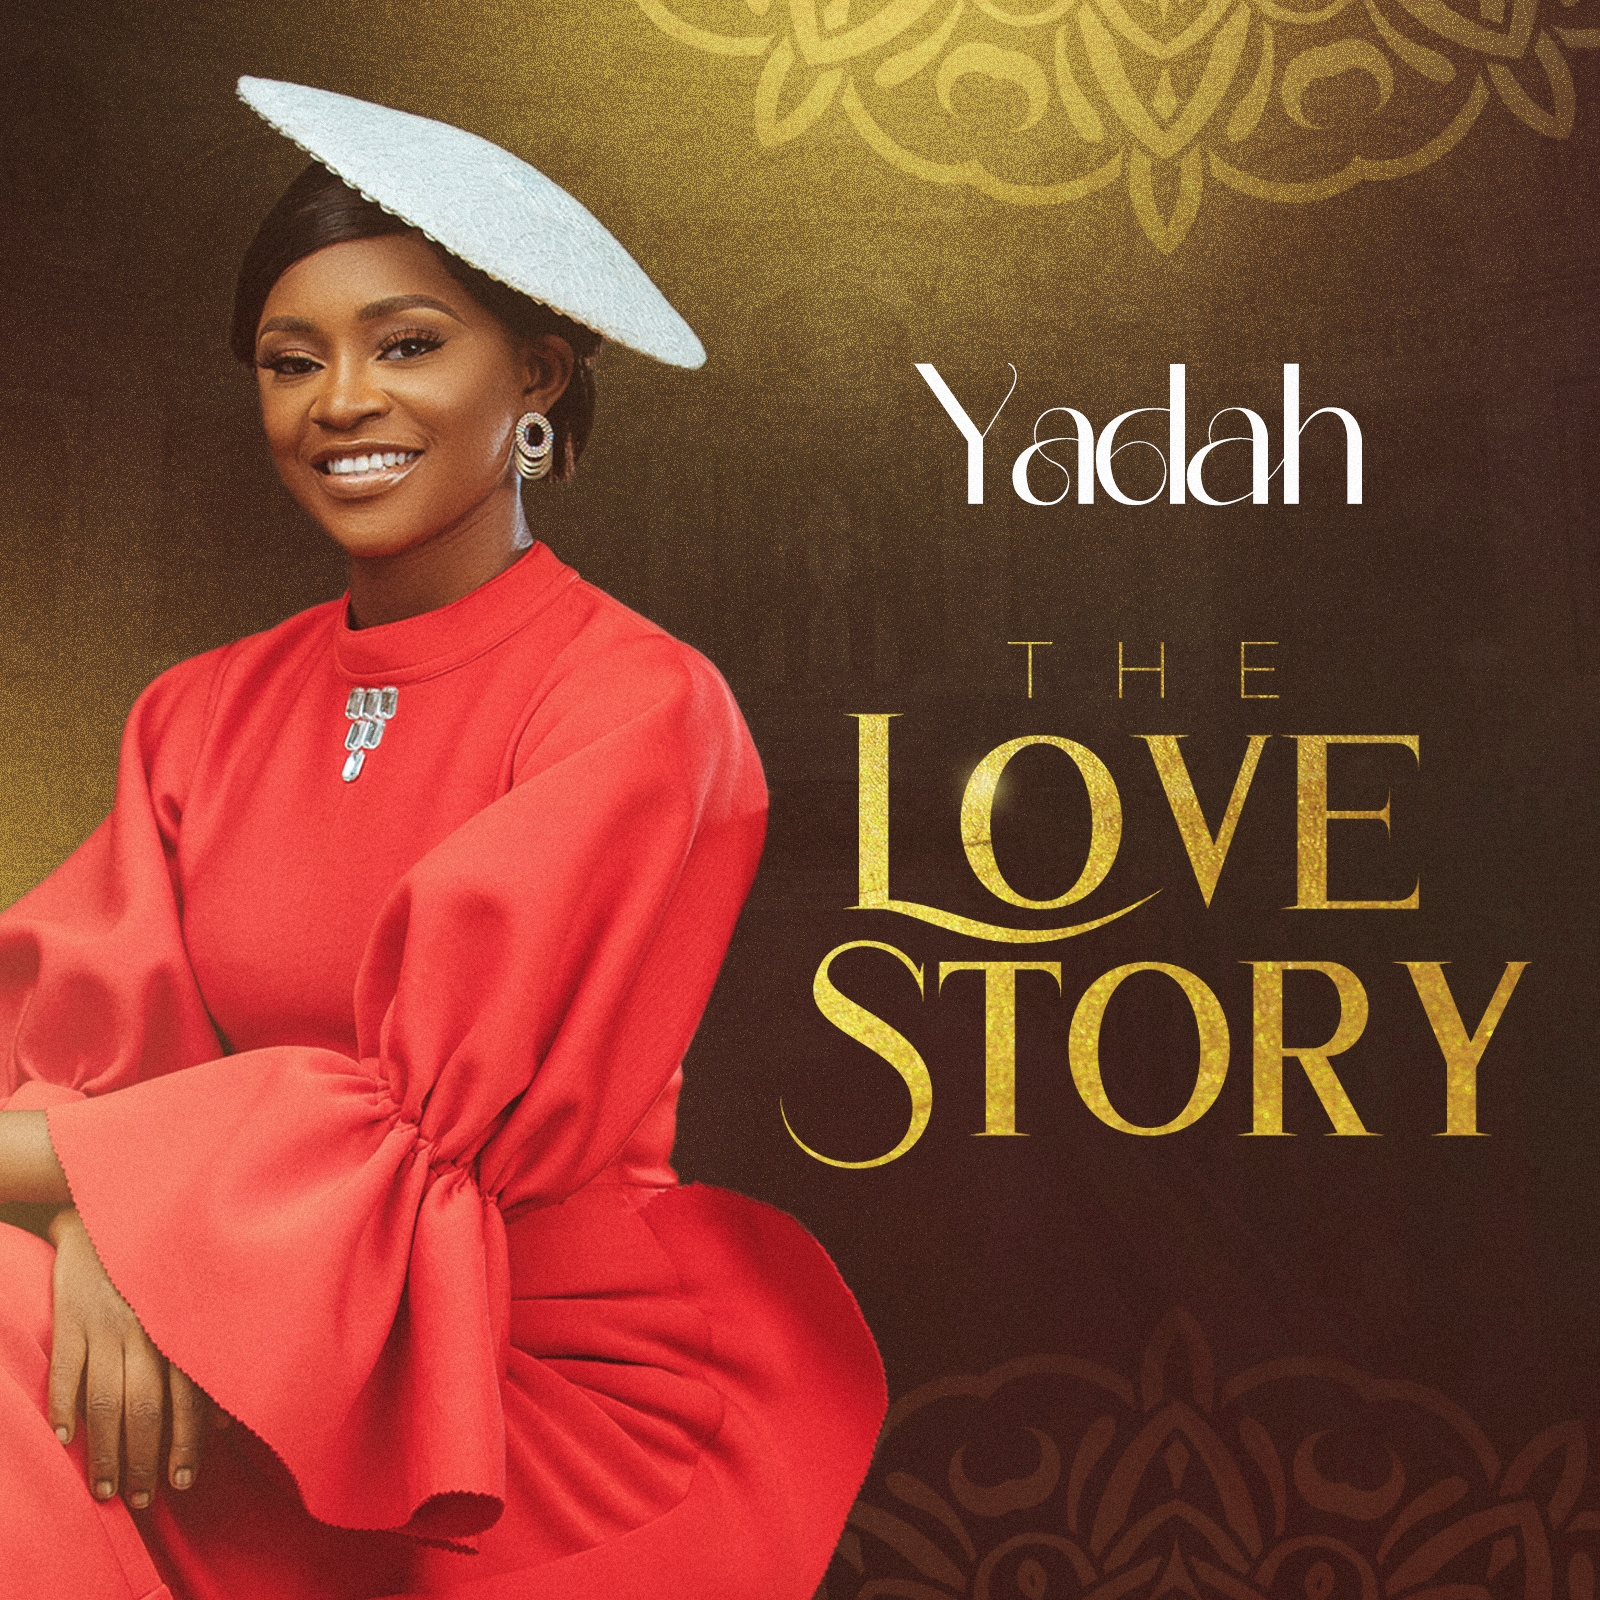 DOWNLOAD Yadah - The Love Story Stream/Download Album